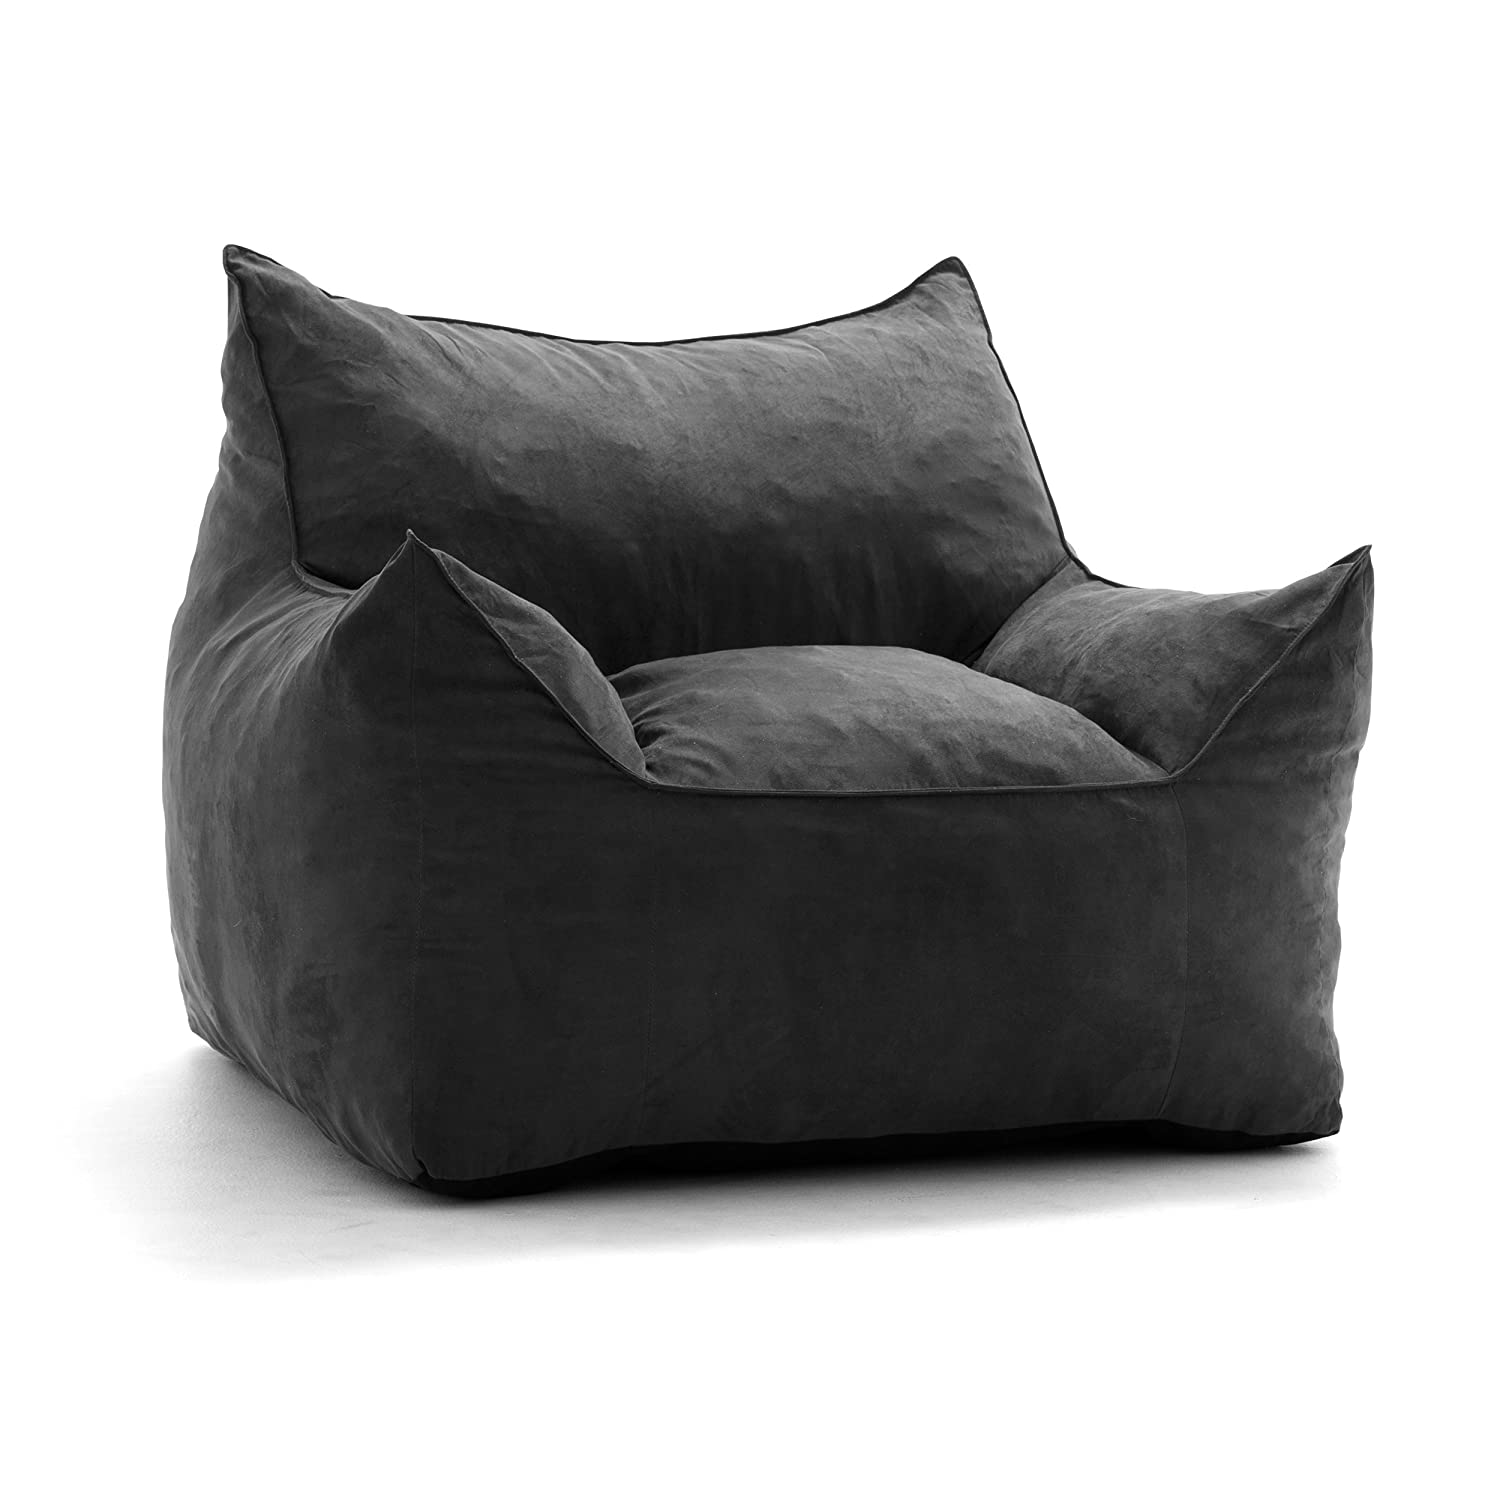 Awesome Big Joe Imperial Lounger In Comfort Suede Plus Black Beatyapartments Chair Design Images Beatyapartmentscom